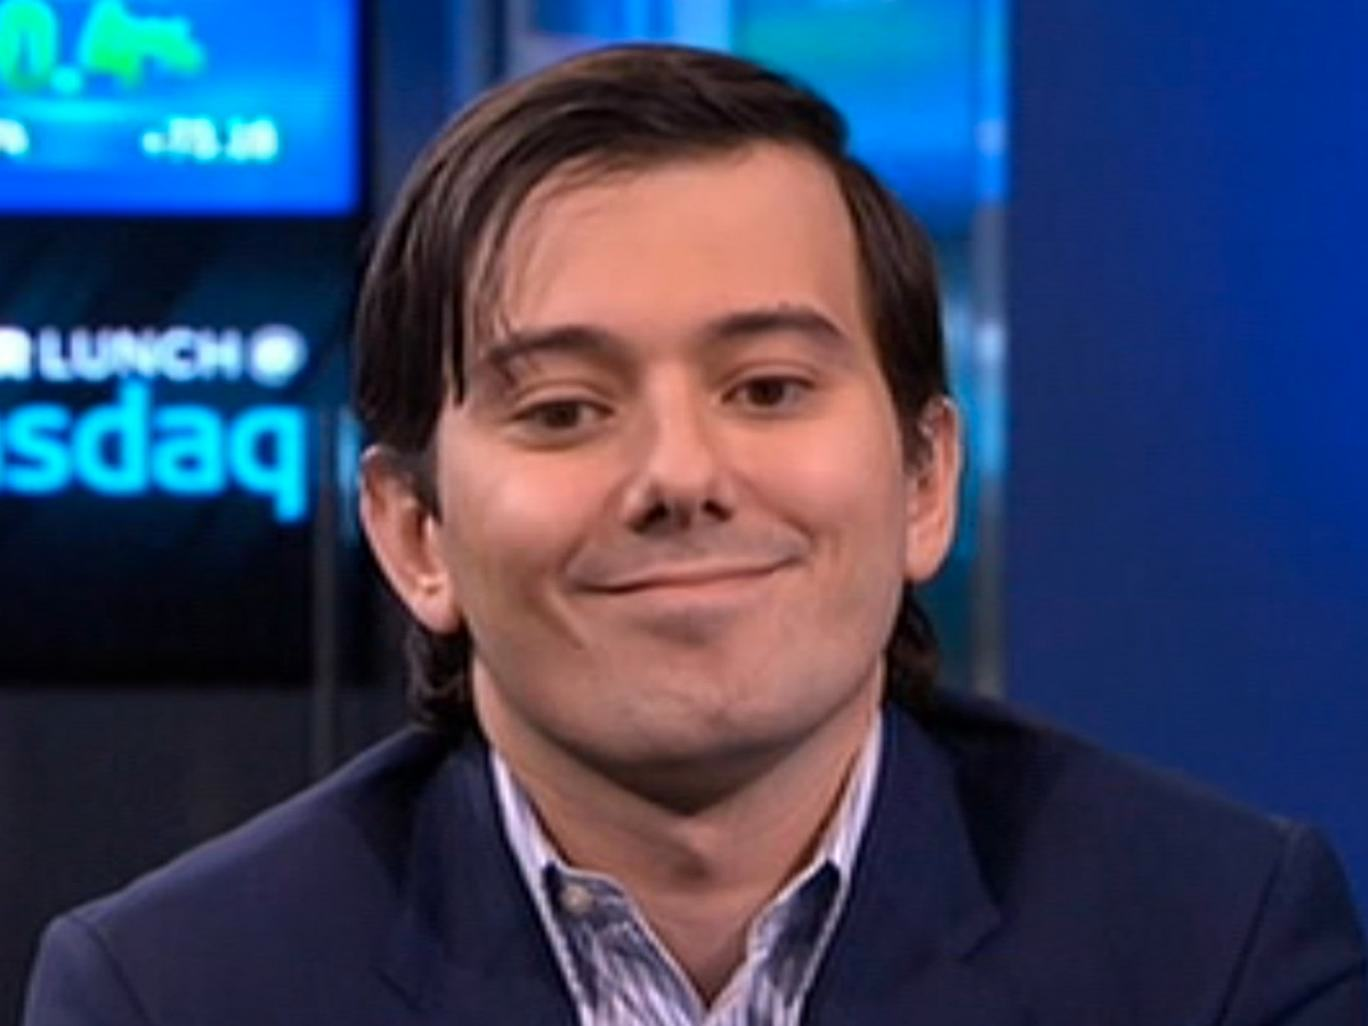 The Most Hated Man On The Internet Raises The Price Of Another Drug Shkreli 4